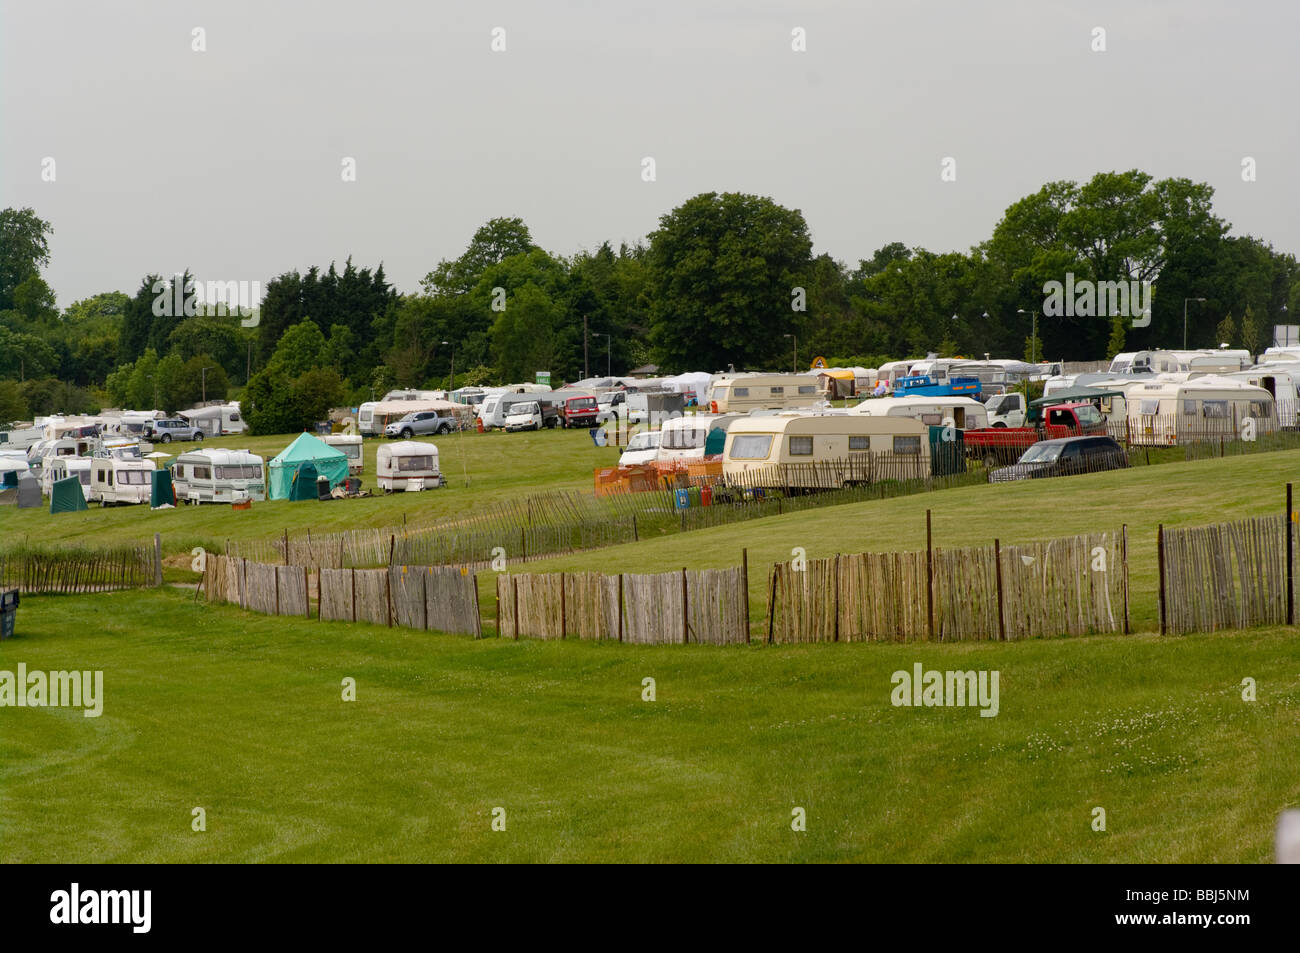 Caravan Park at Epsom Downs Racecourse - Stock Image